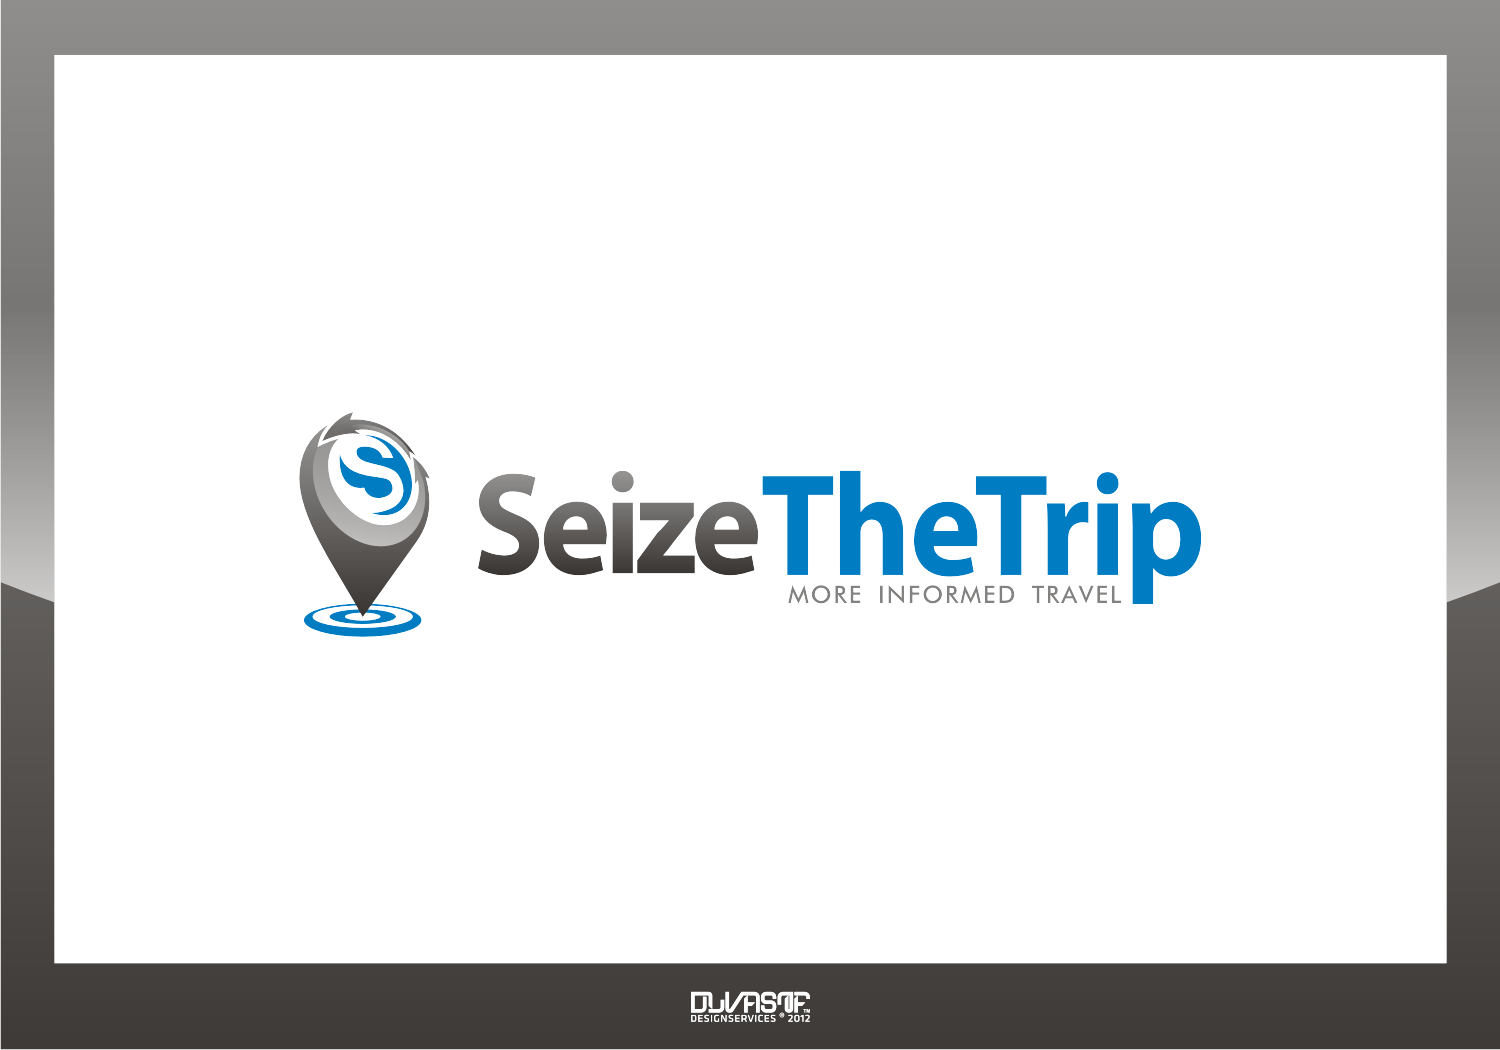 Seize Your Trip -- logo for active, engaged travel community site!